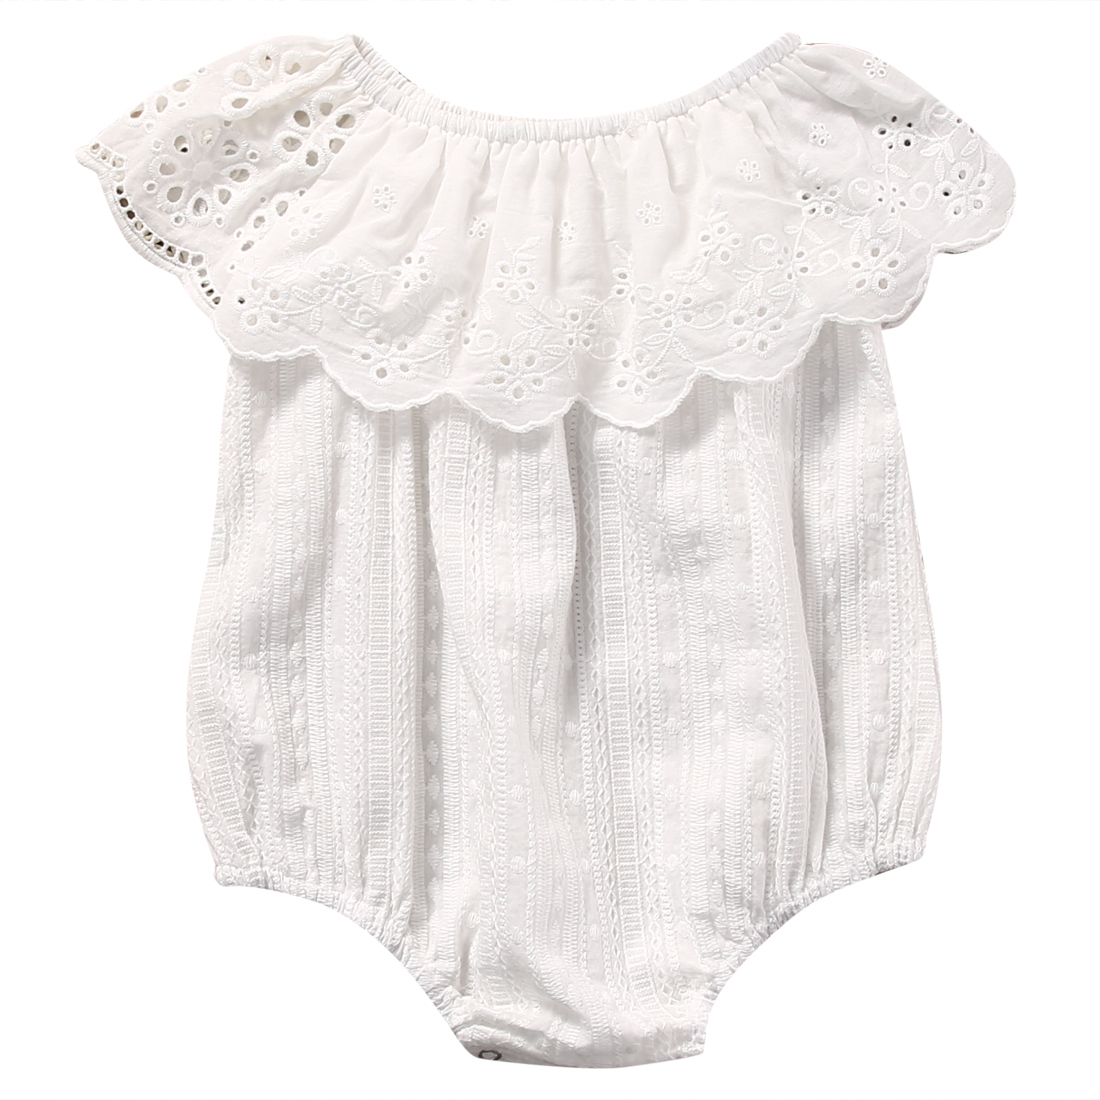 Summer 2017 Newborn Toddler Baby Girl White Lace Romper Jumpsuit Infant Clothes Outfit Sunsuit 2017 summer newborn baby girl white lace romper jumpsuit floral infant clothes outfit sunsuit